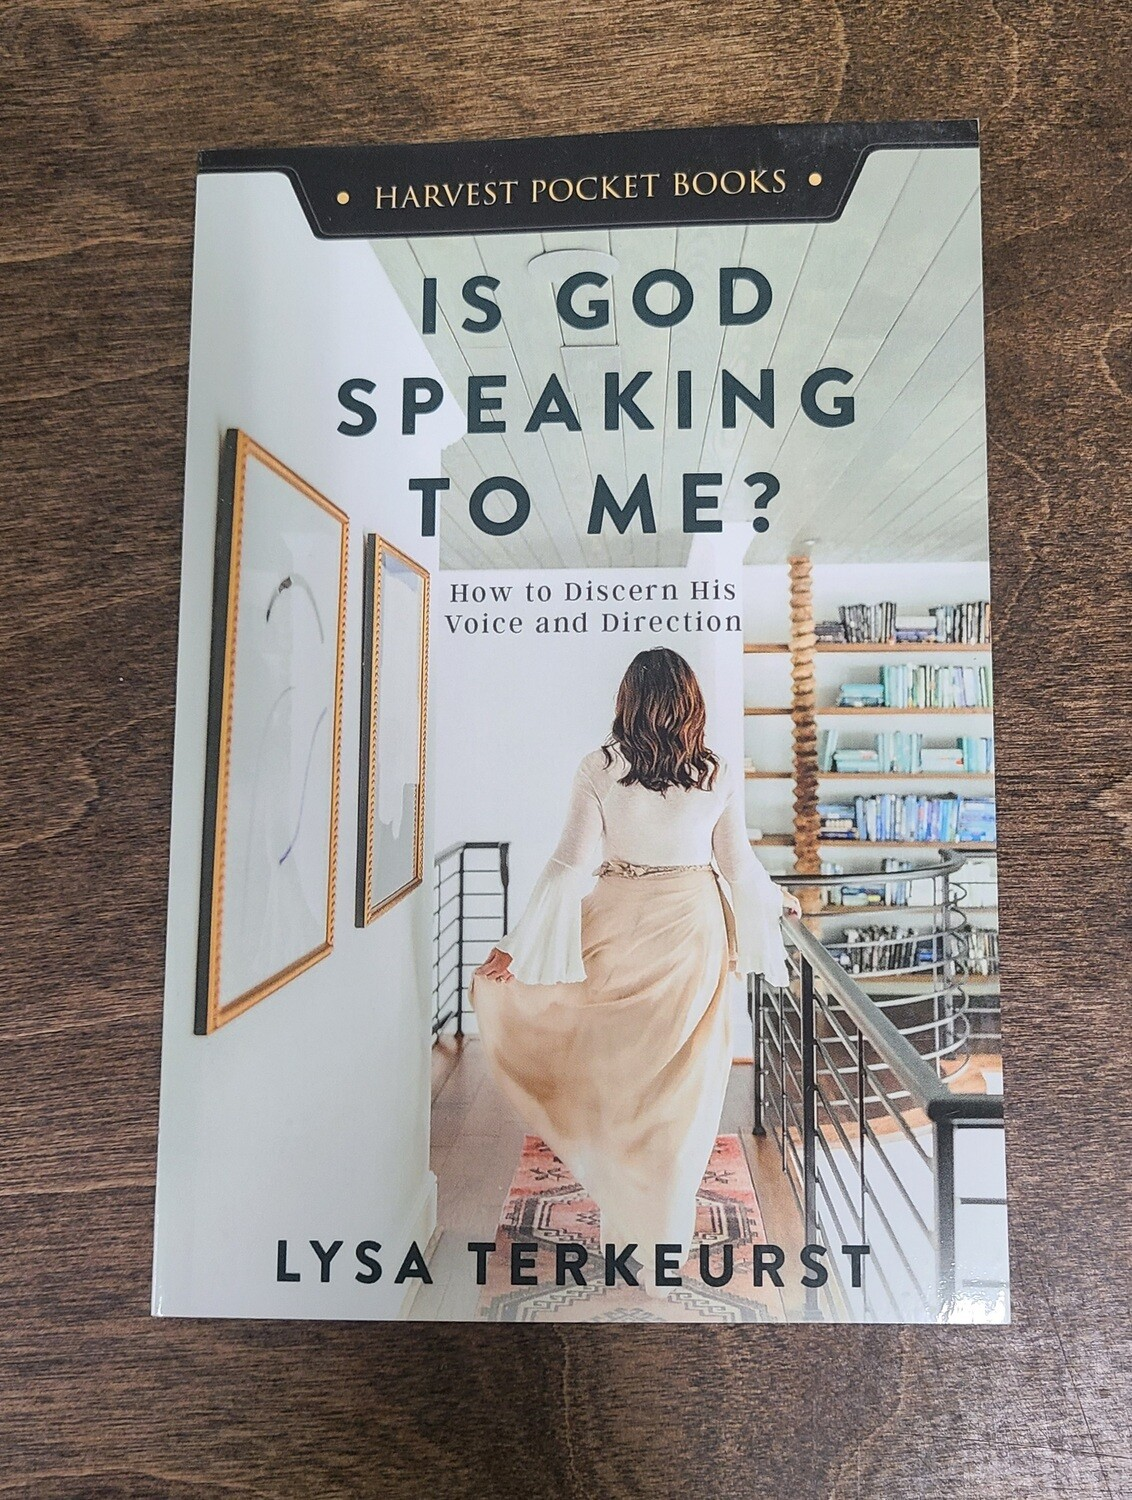 Is God Speaking to Me? by Lysa Terkeurst